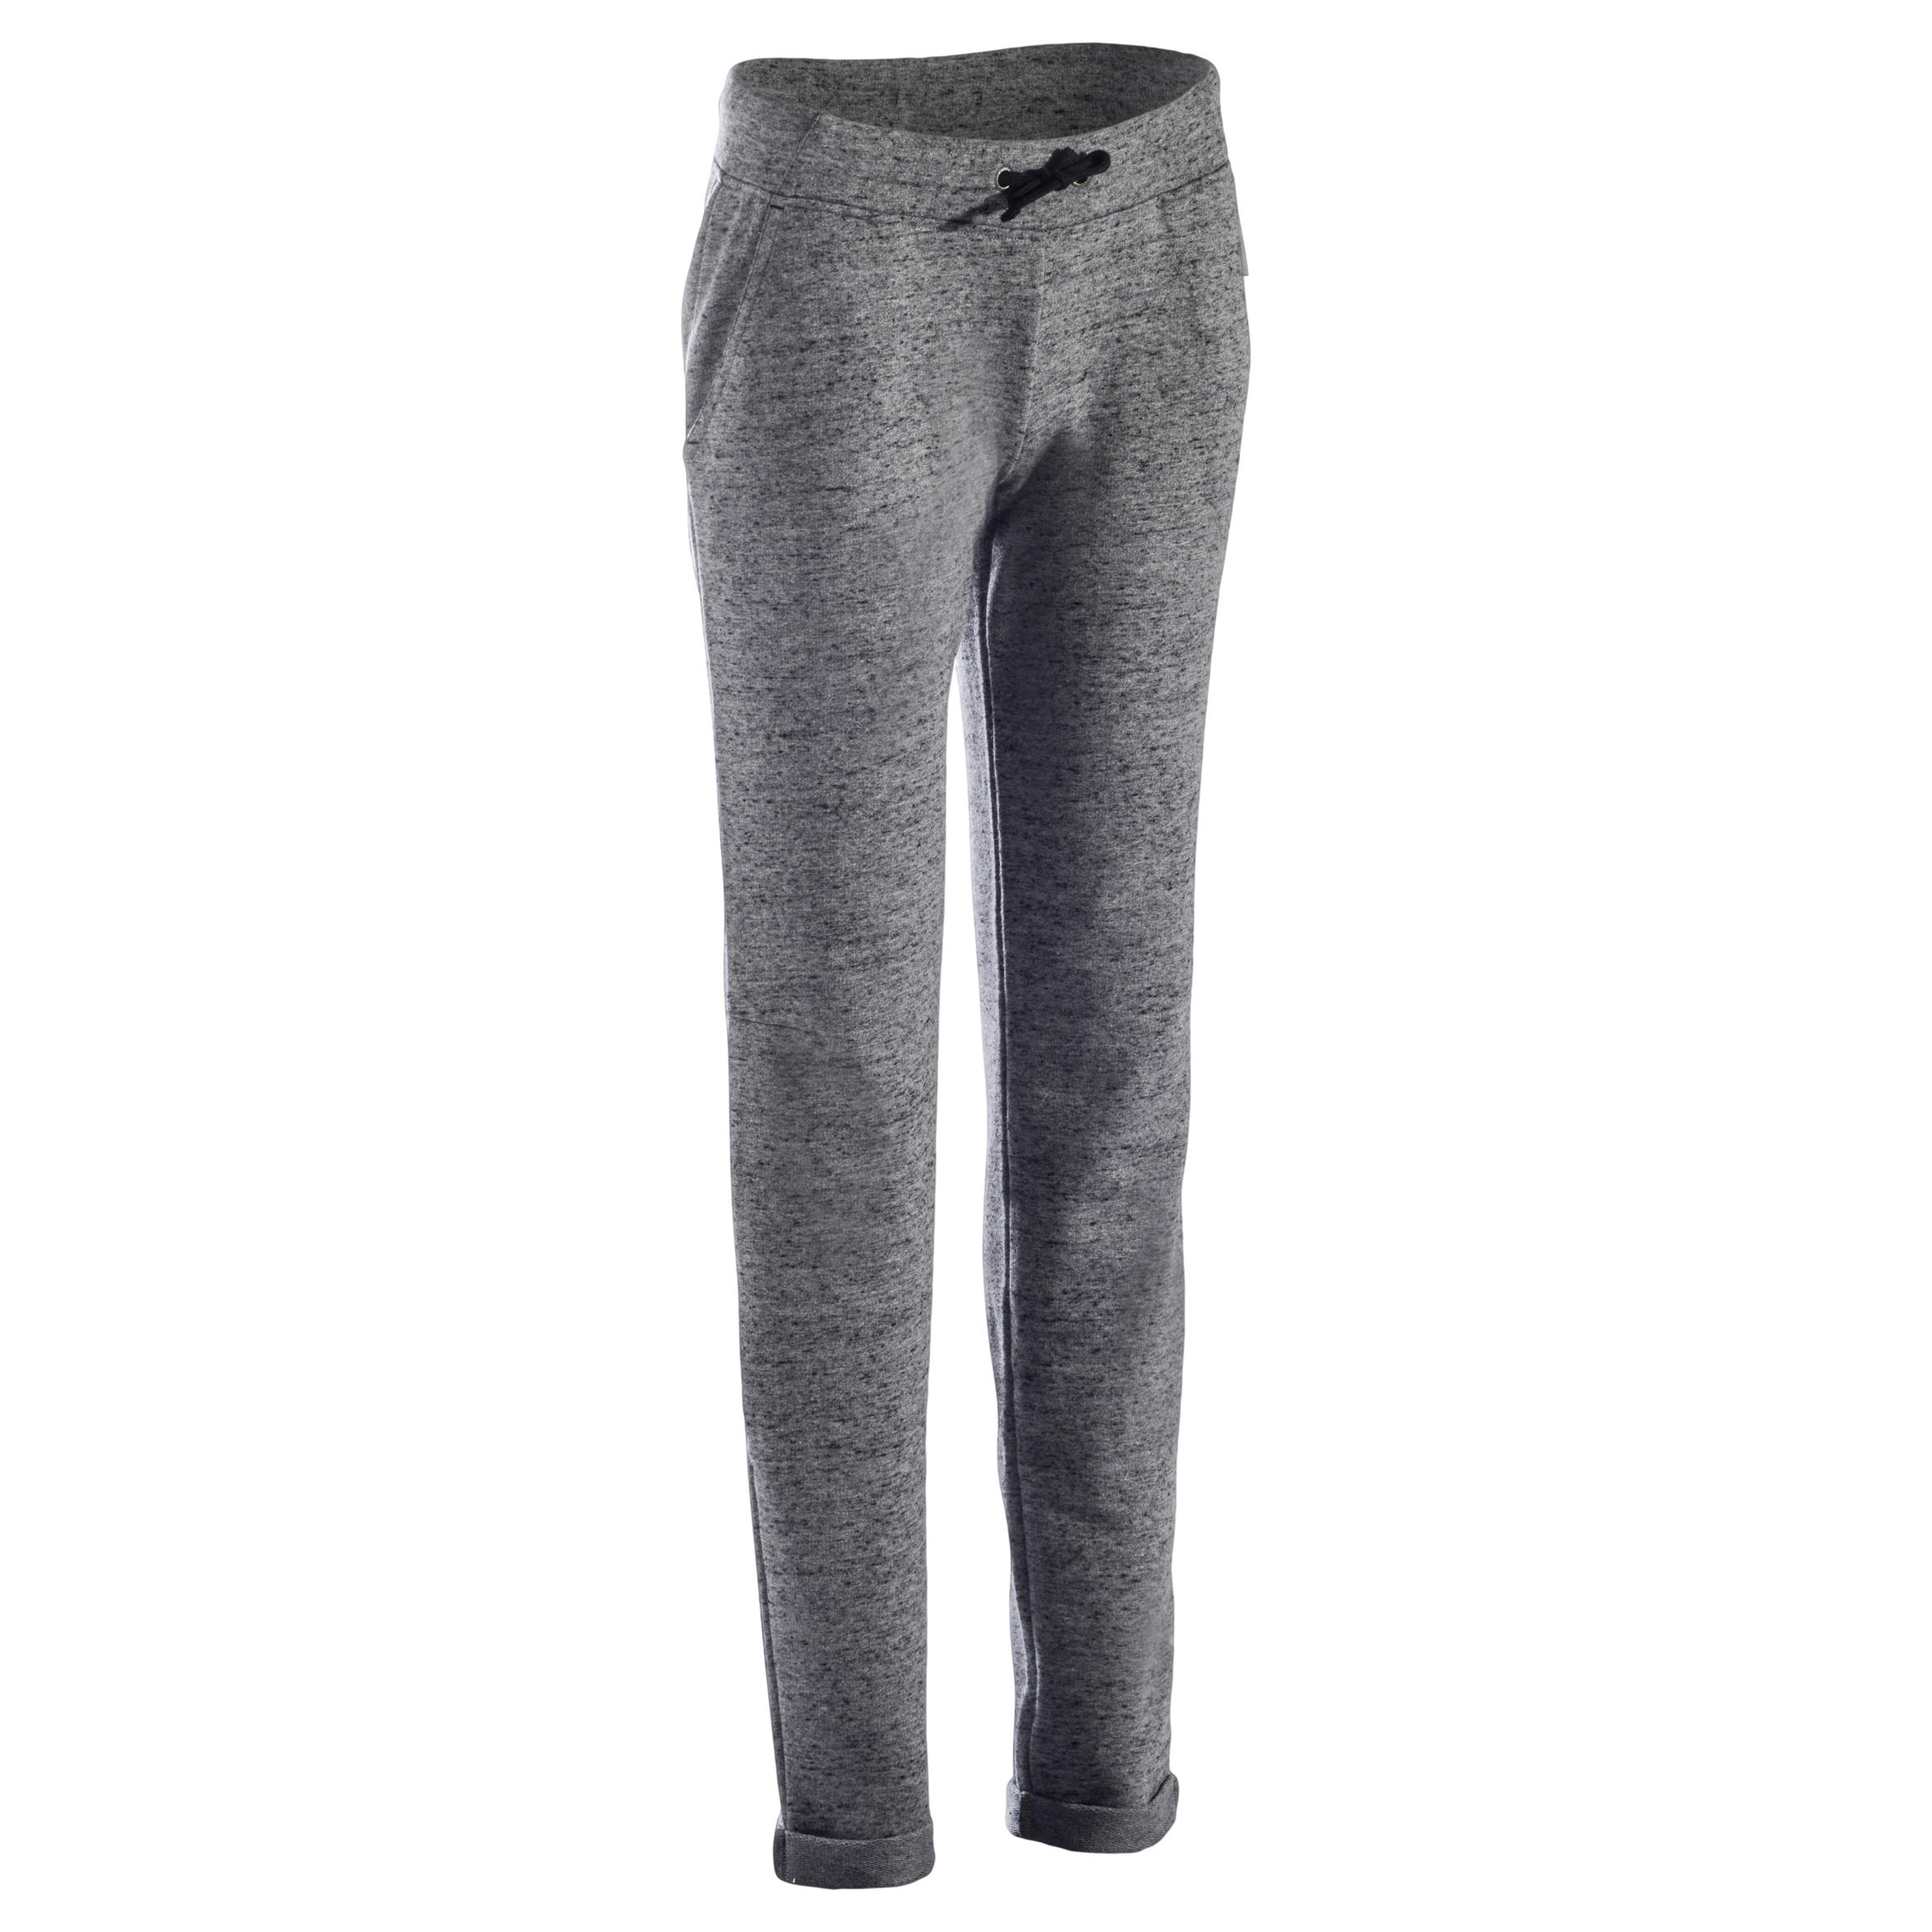 500 Women's Stretching Slim-Fit Bottoms - Speckled Heathered Grey